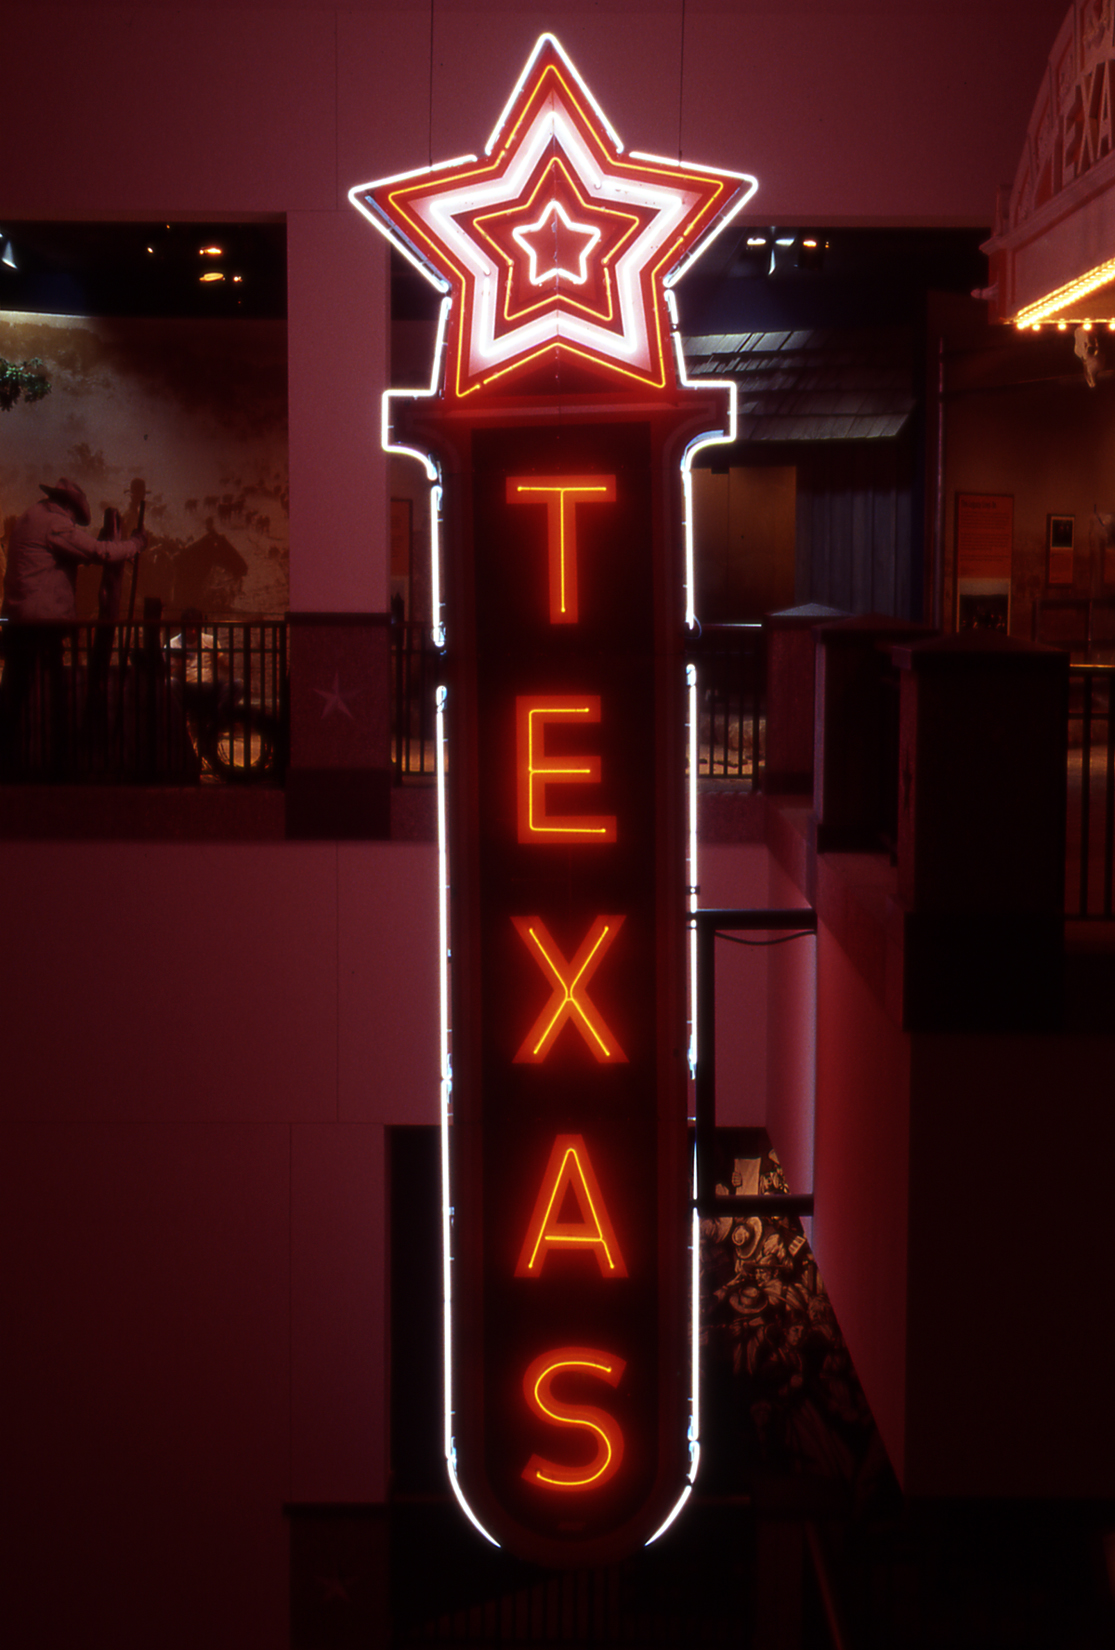 Image courtesy of Austin Convention and Visitor's Bureau.